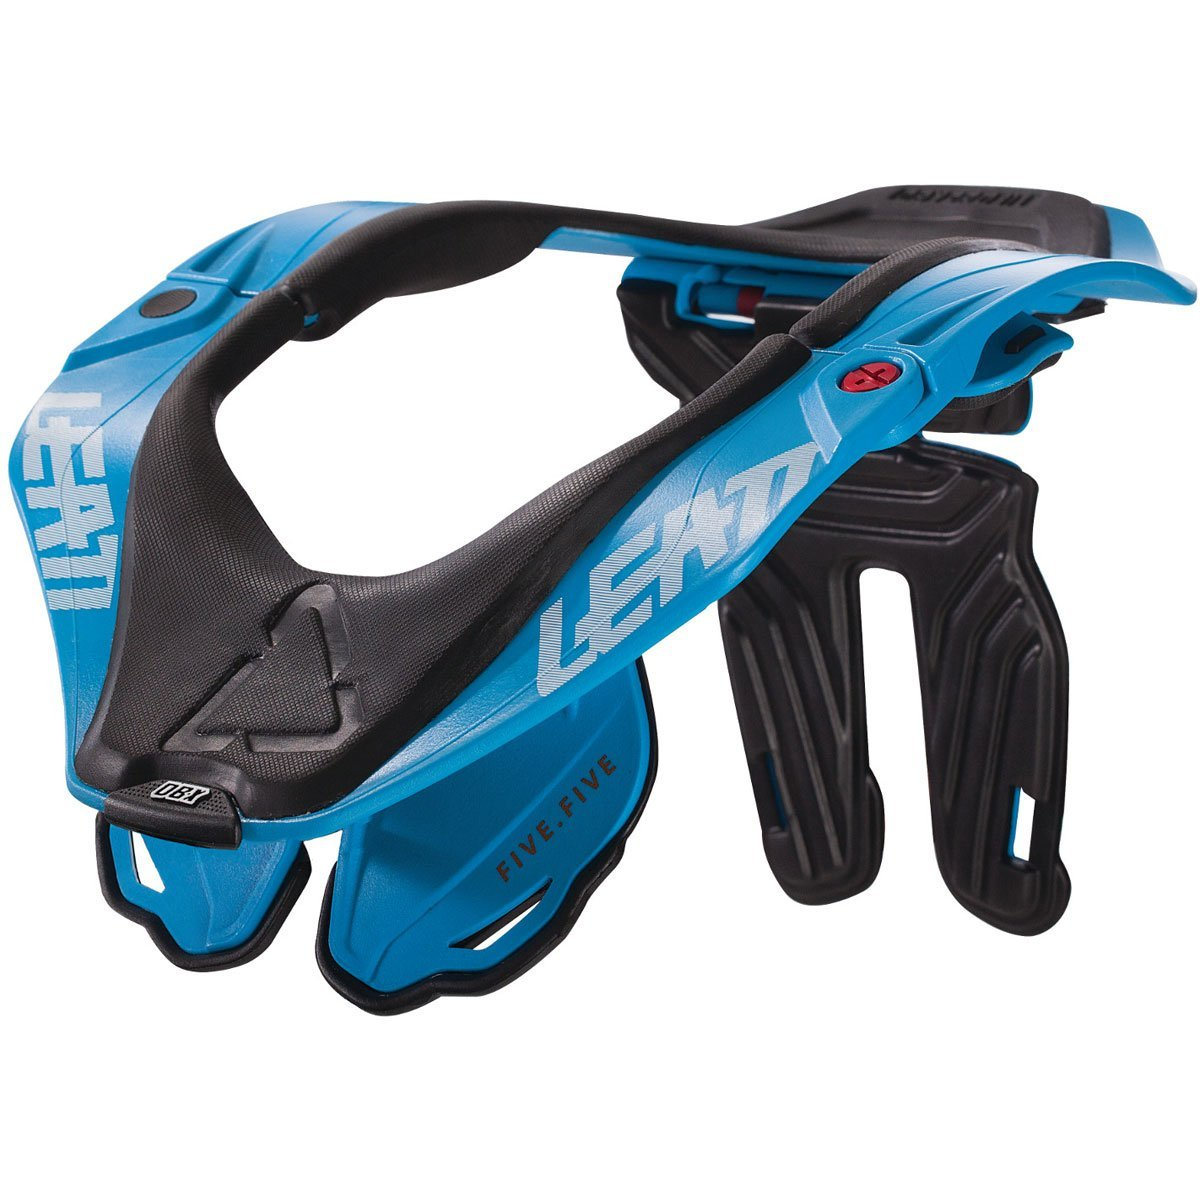 Leatt Blue Large//X-Large Neck Brace GPX